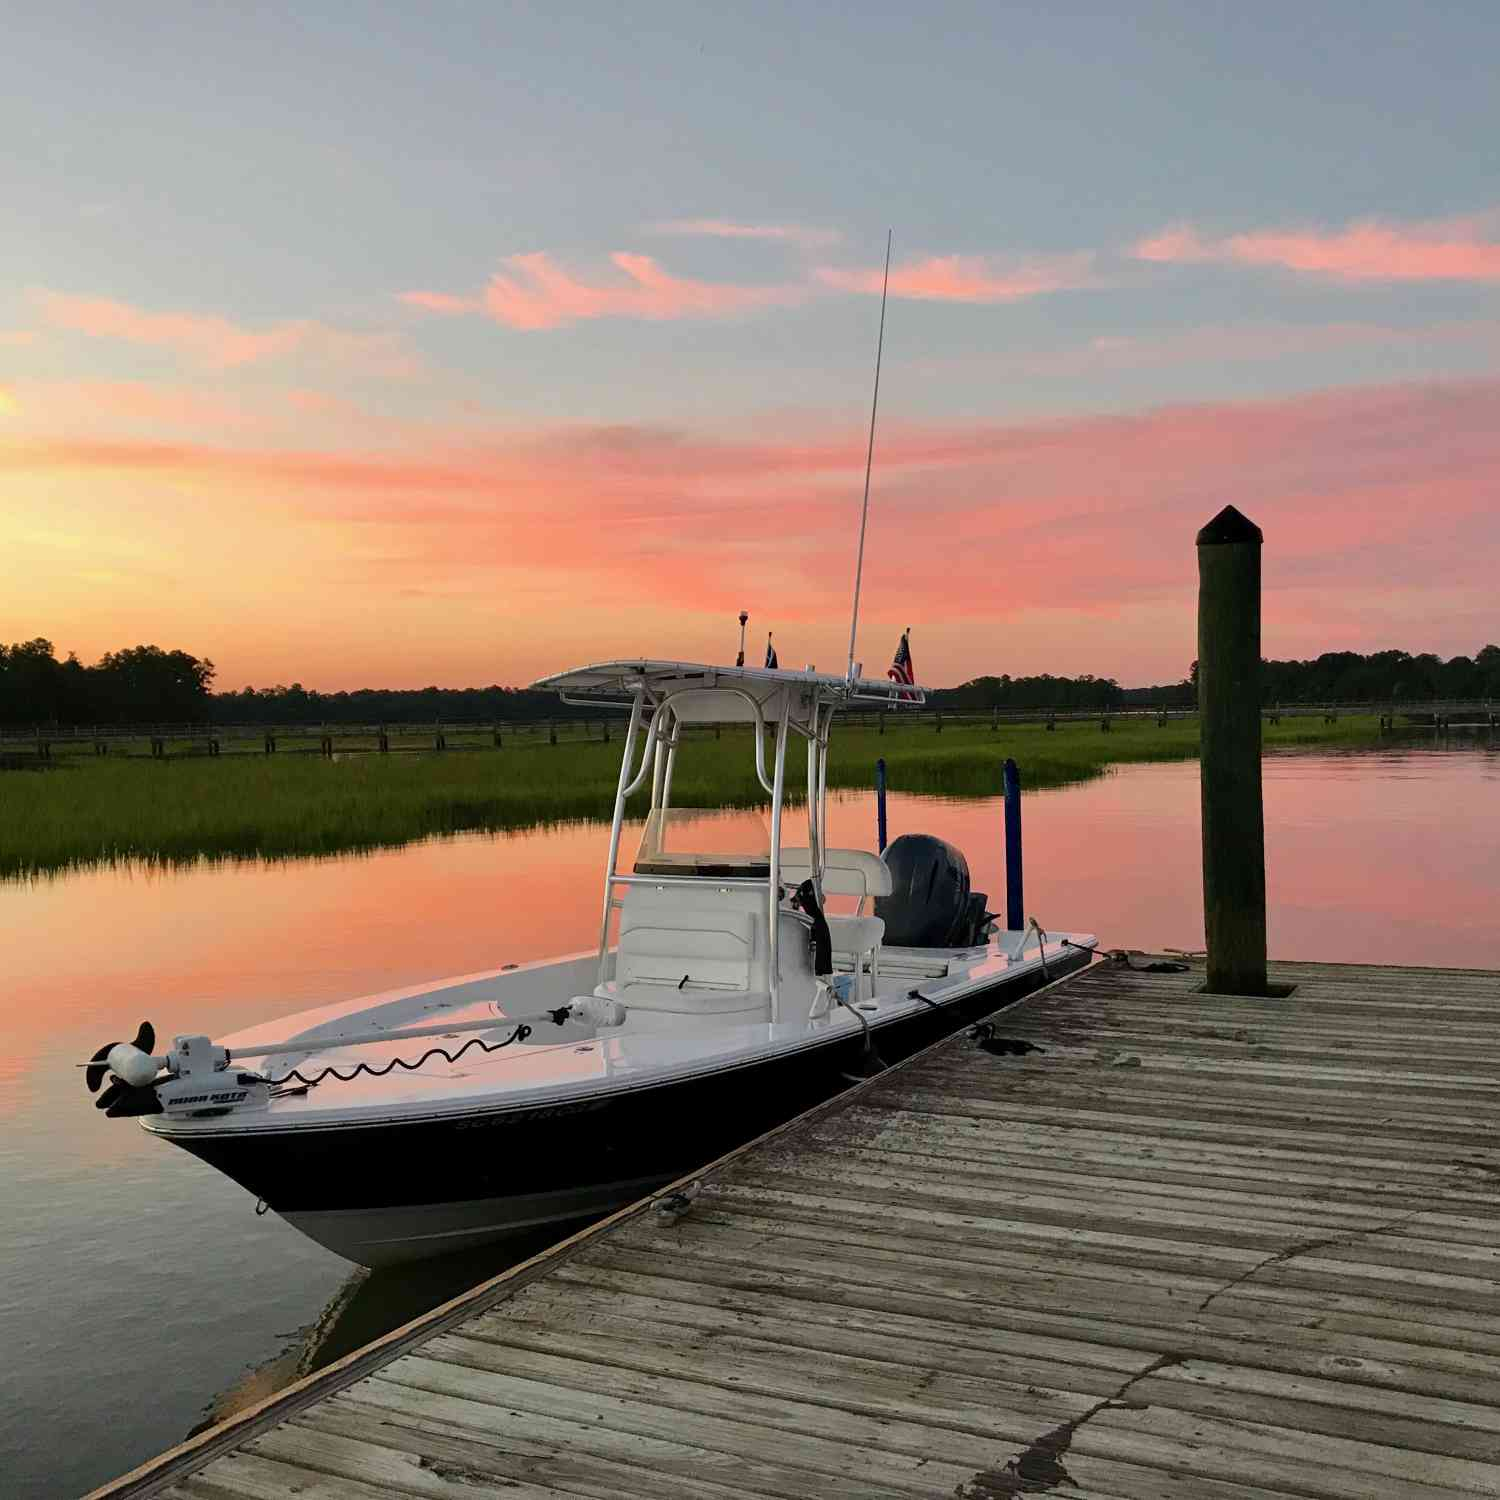 Title: Lowcountry Sunset - On board their Sportsman Masters 227 Bay Boat - Location: Okatie, SC. Participating in the Photo Contest #SportsmanJuly2018